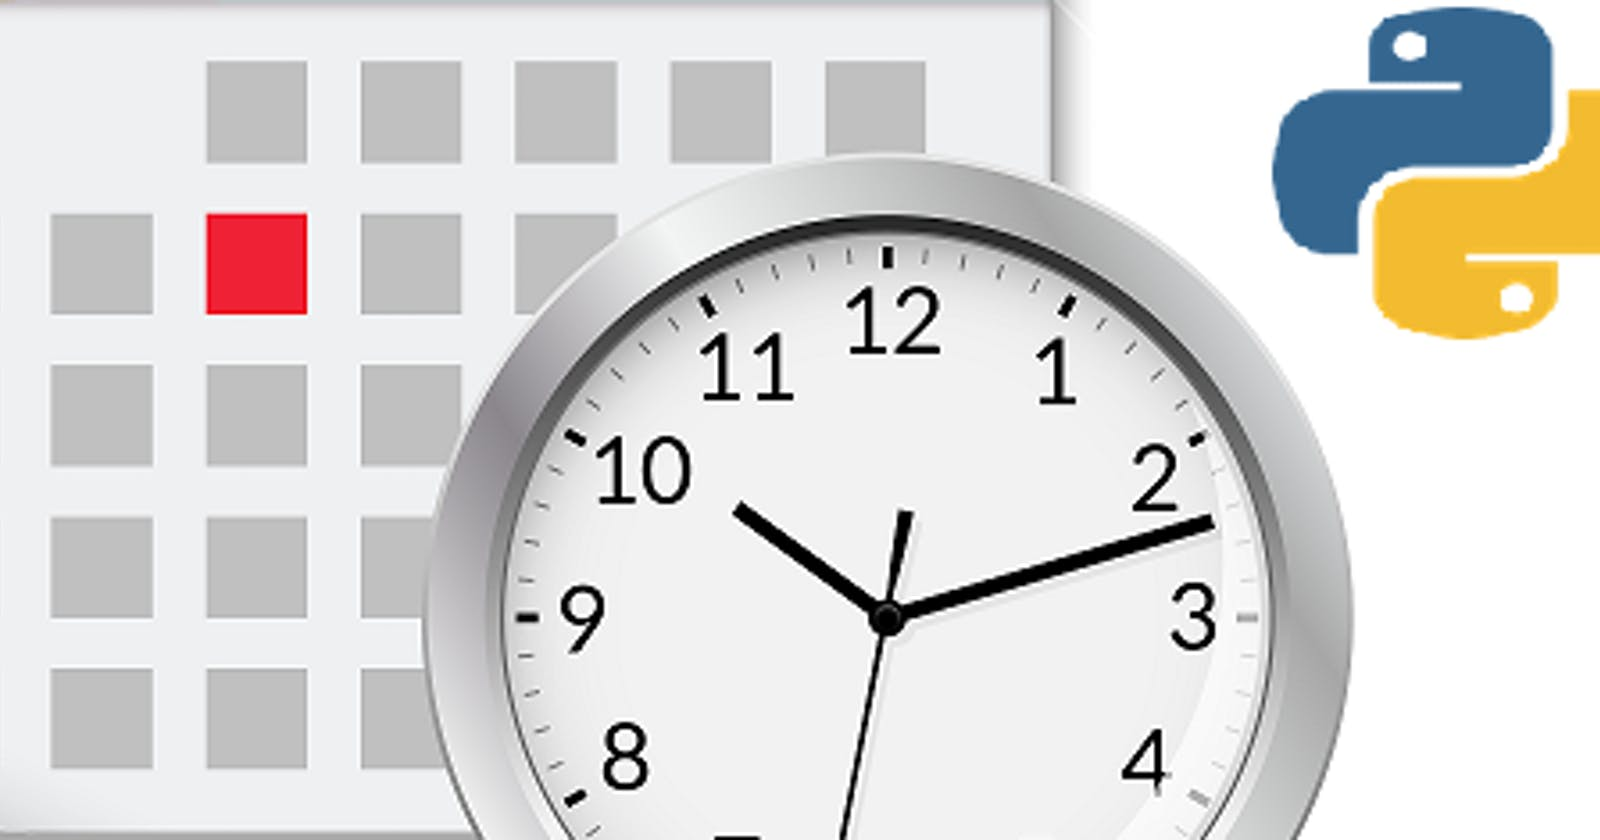 Simplifying Date and Time with Python